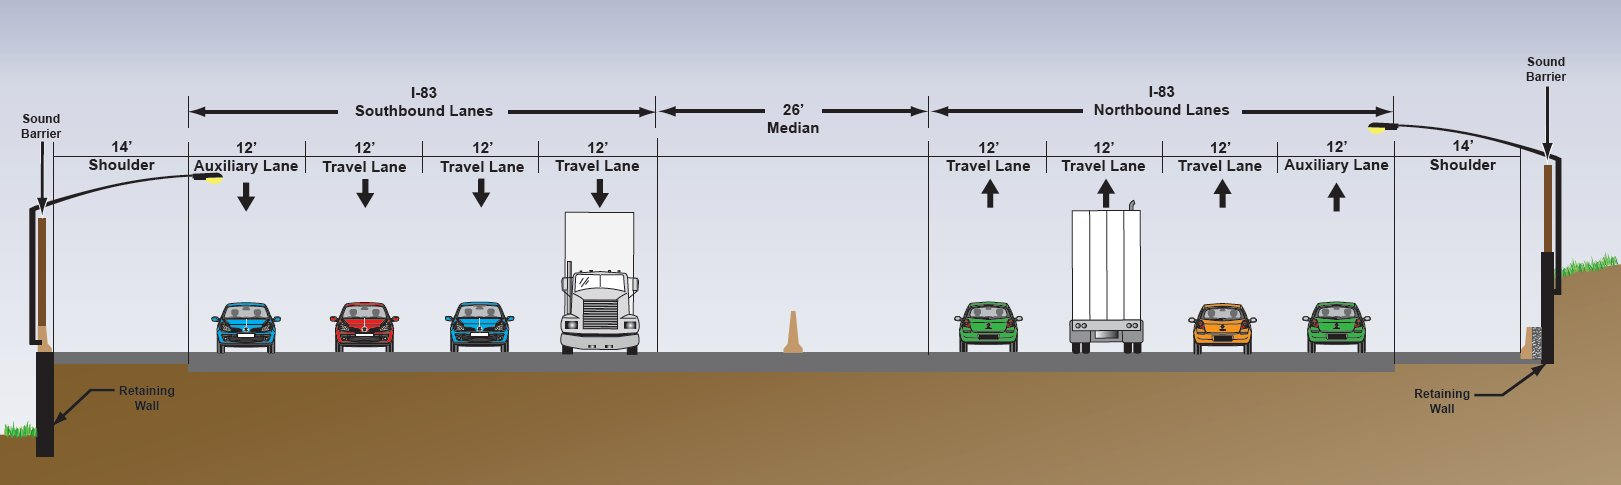 The Typical traffic pattern shows three travel lanes and an auxiliary lane in both directions.